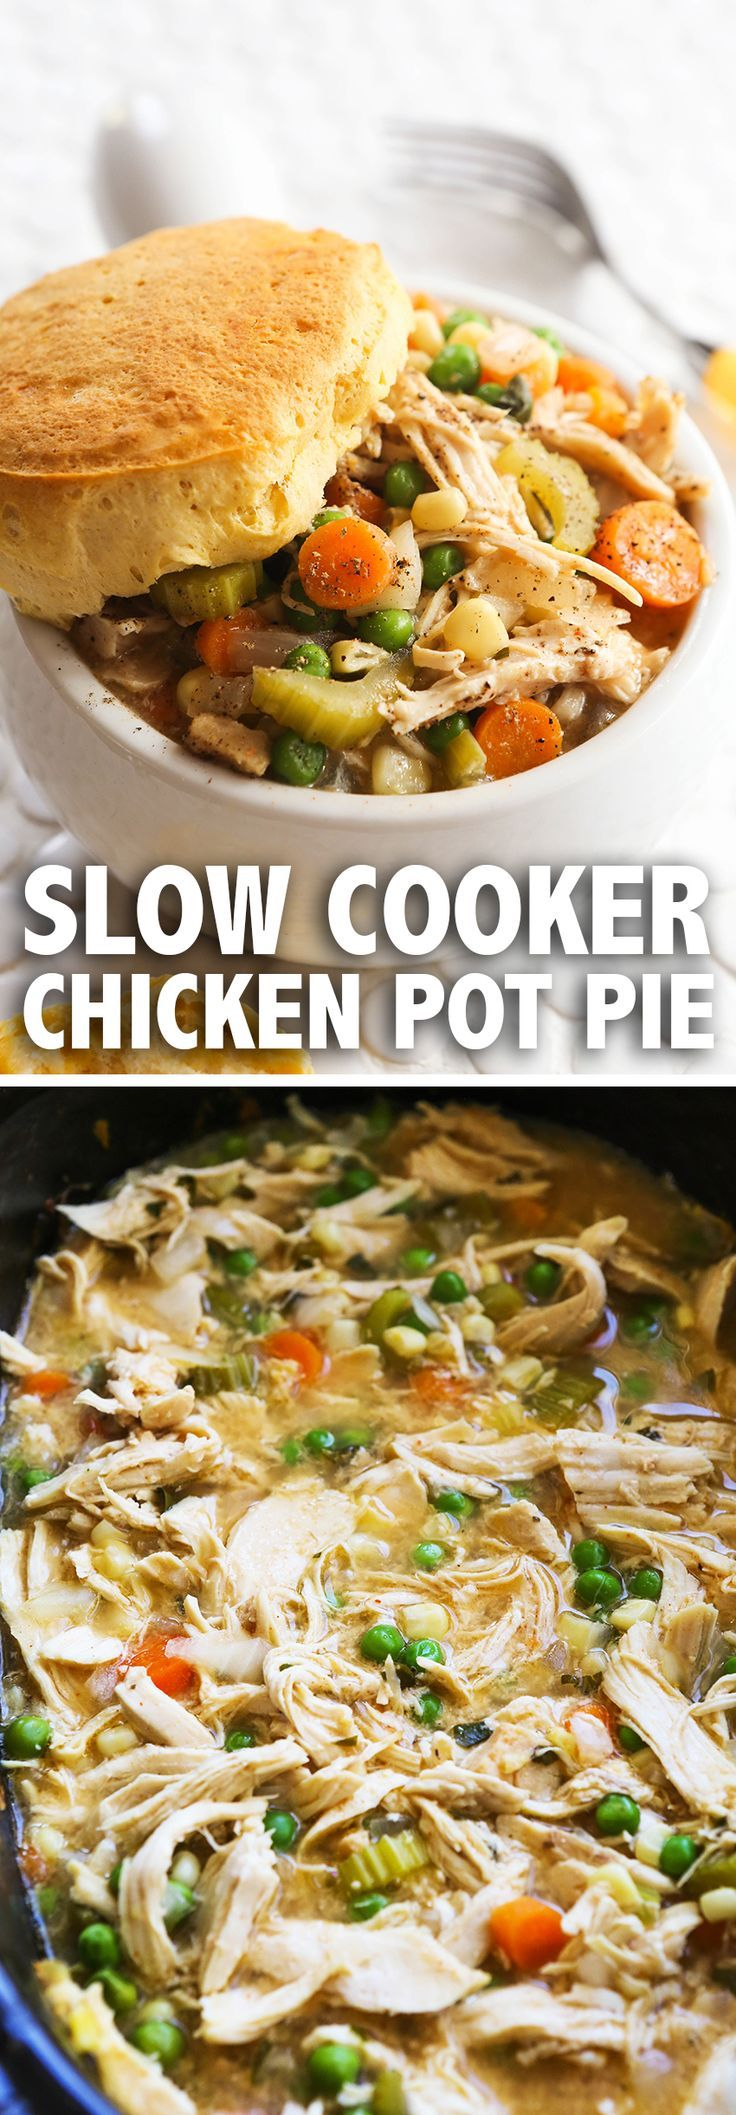 Slow Cooker Chicken Pot Pie | Chicken Pot Pie simplified! I LOVE this version of the good ol' delicious comfort food. Great weeknight dinner option!